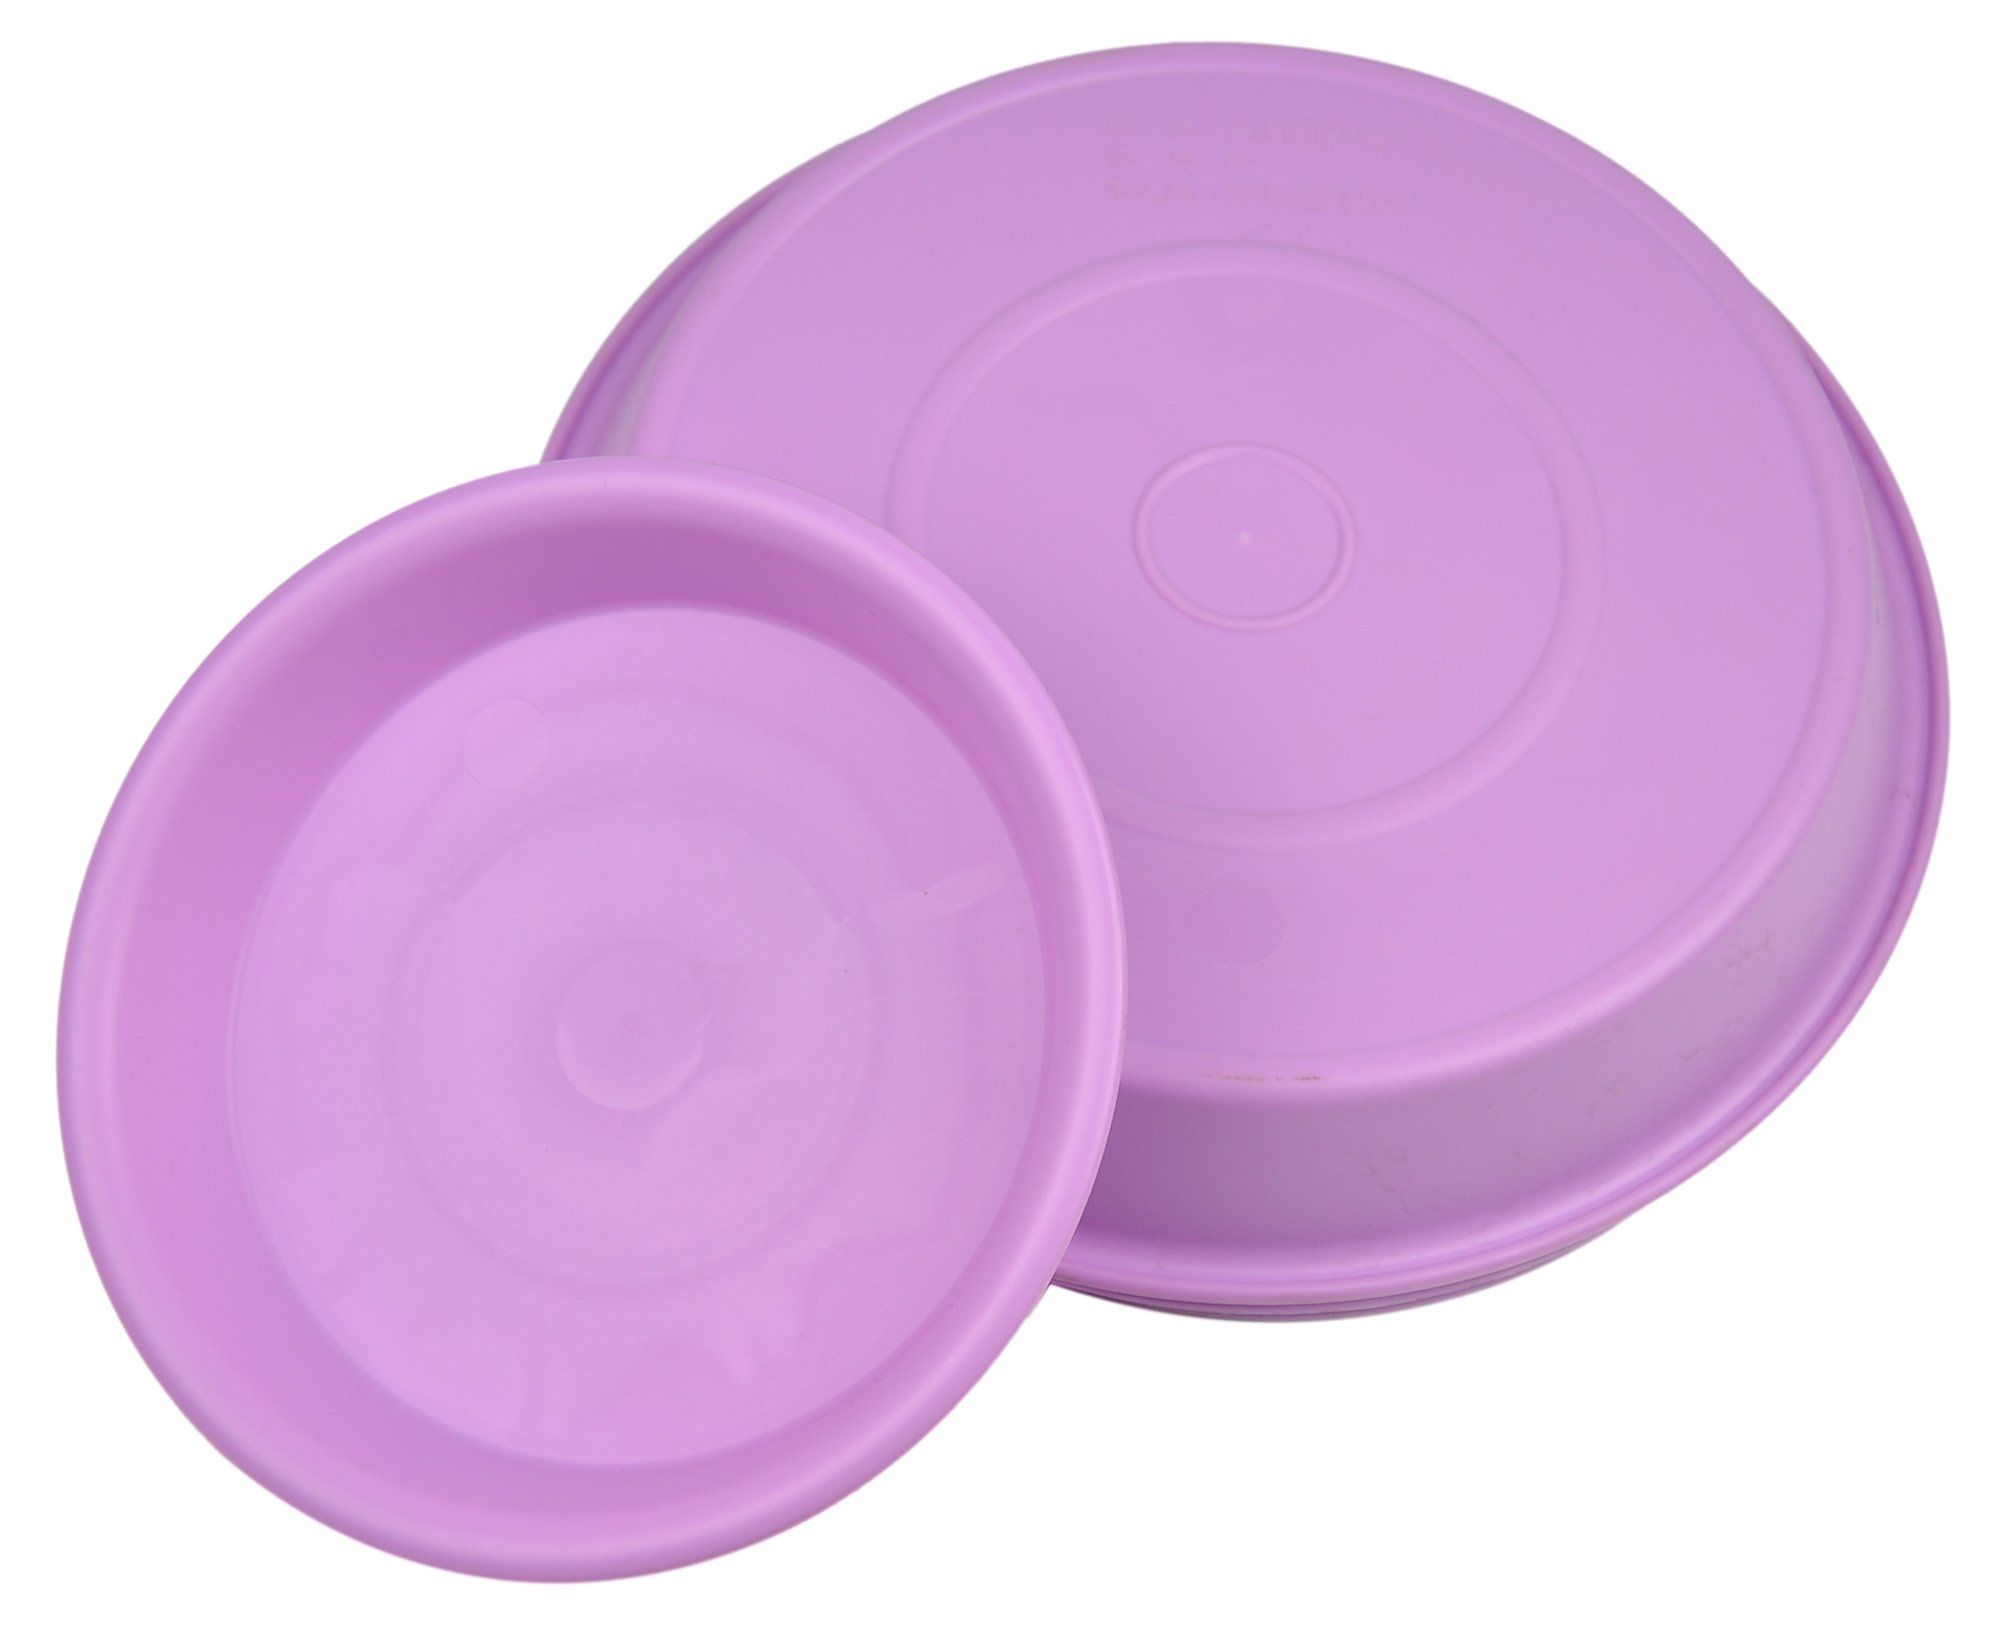 6.9'' Round Plant Saucer Planter Tray Pat Pallet for Flowerpot,Purple,1080 Count by Zhanwang (Image #2)